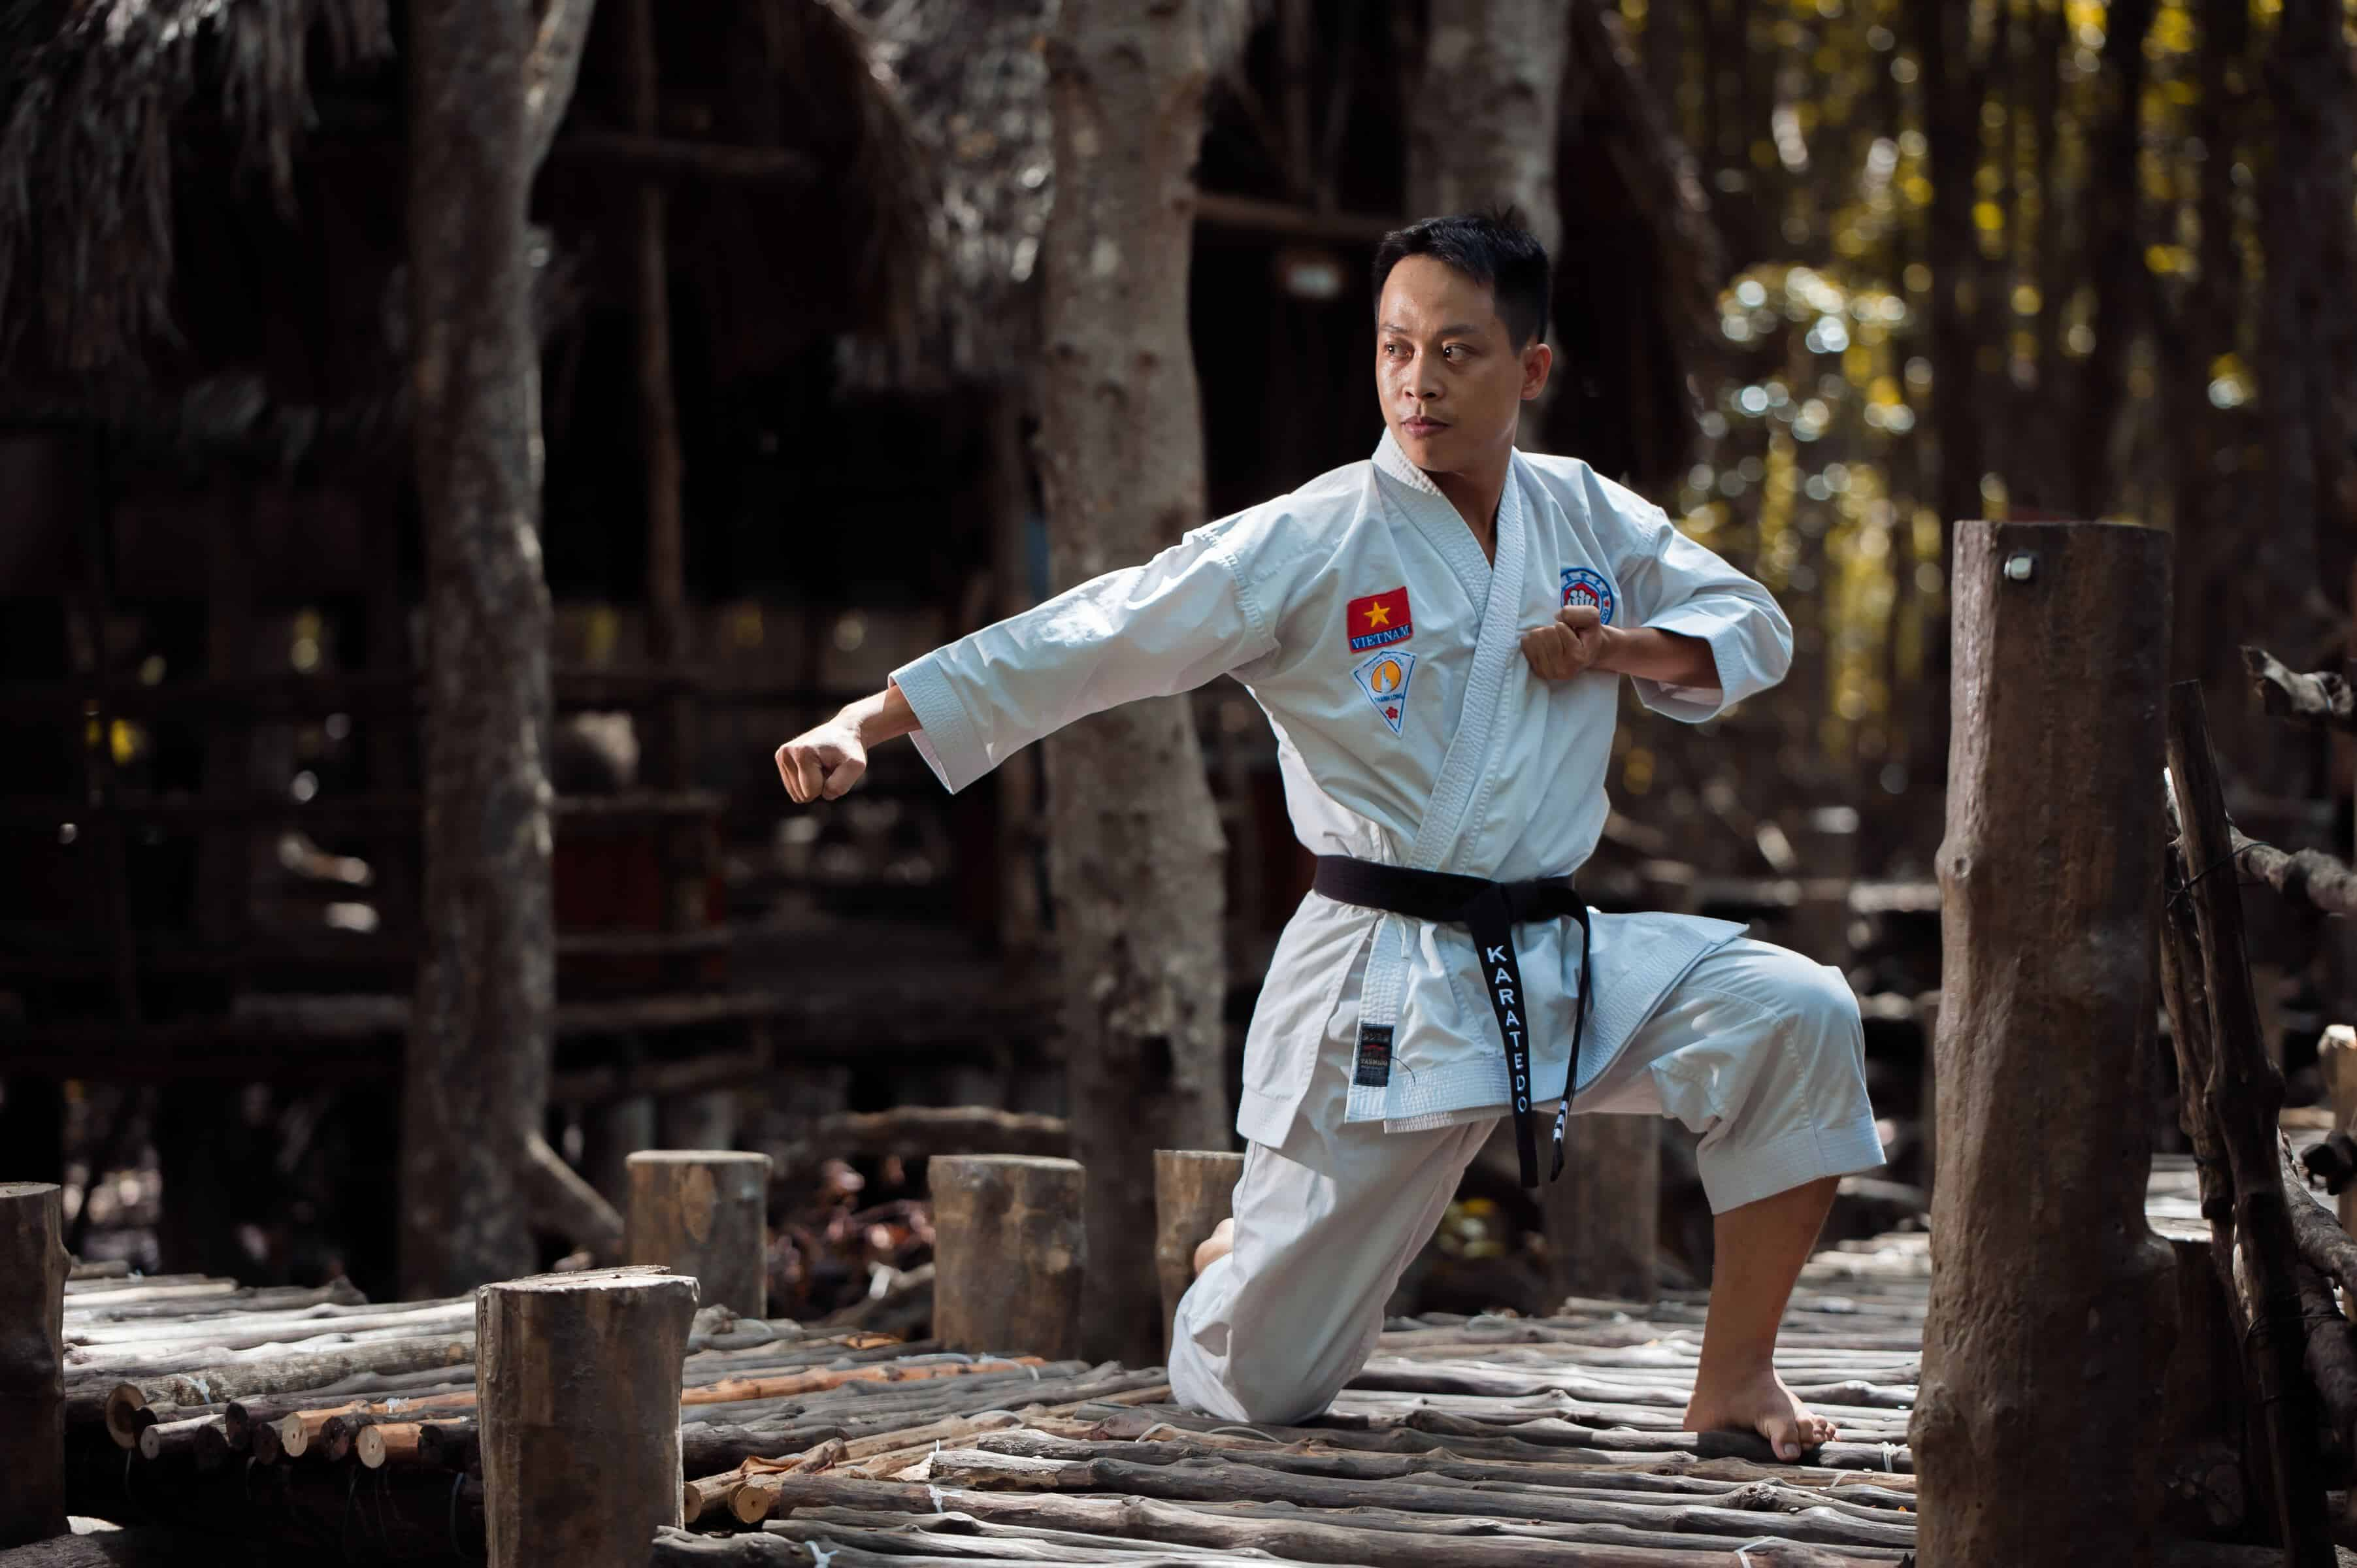 a man is doing one of the taekwondo's stance